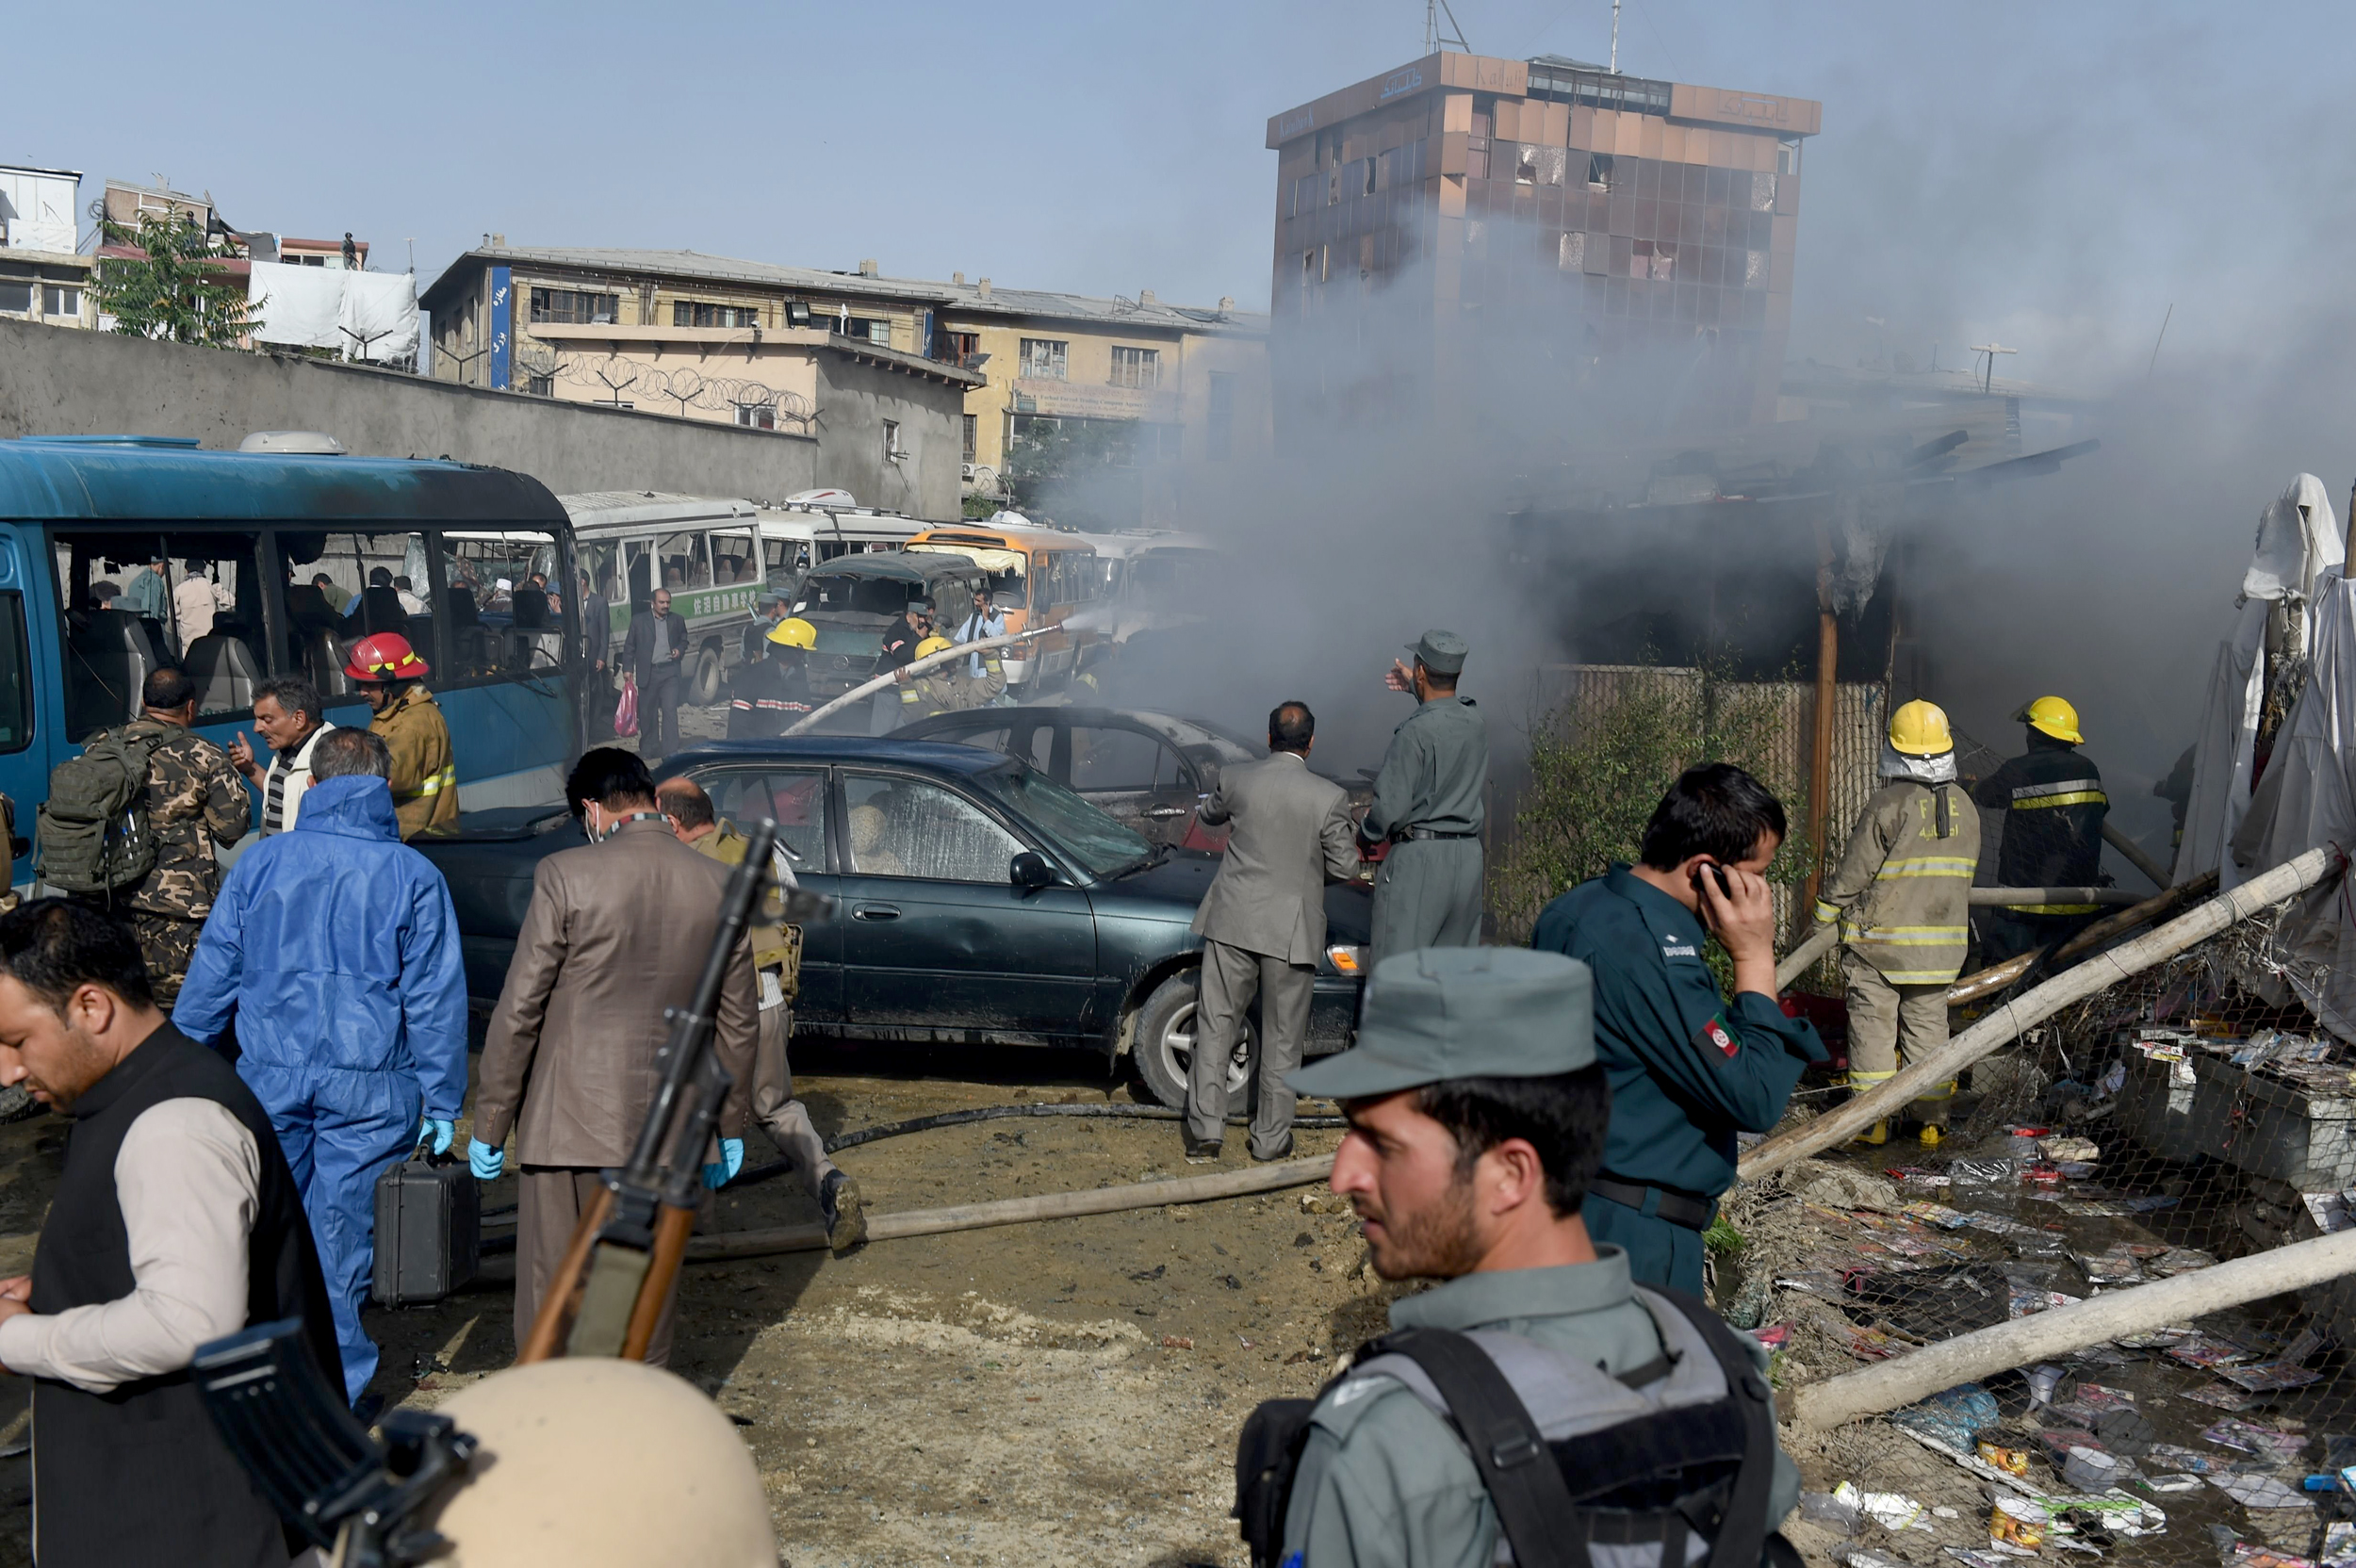 essay on suicide attack Pakistani officials stepped up security across the country on monday after two suicide bombers stormed a church packed with worshippers attending pre-christmas service, killing 9 people and injuring dozens of others — an attack the islamic state claimed responsibility for on sunday.